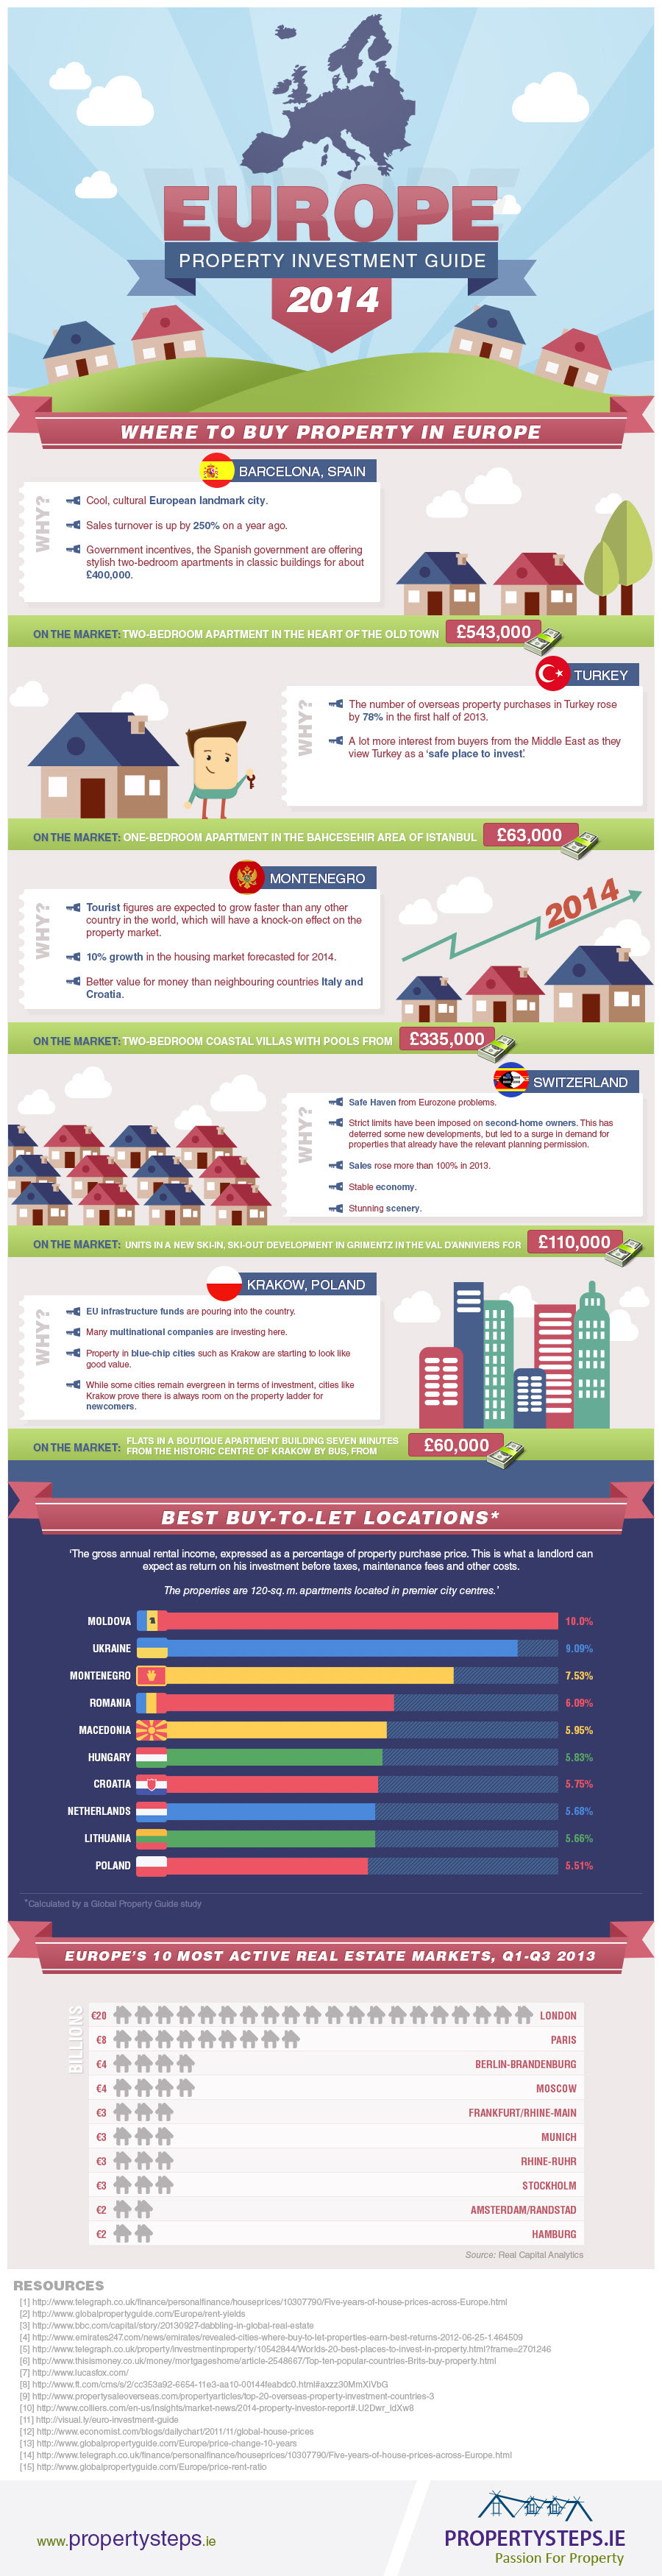 Infographic: Europe Property Investment Guide 2014 #infographic